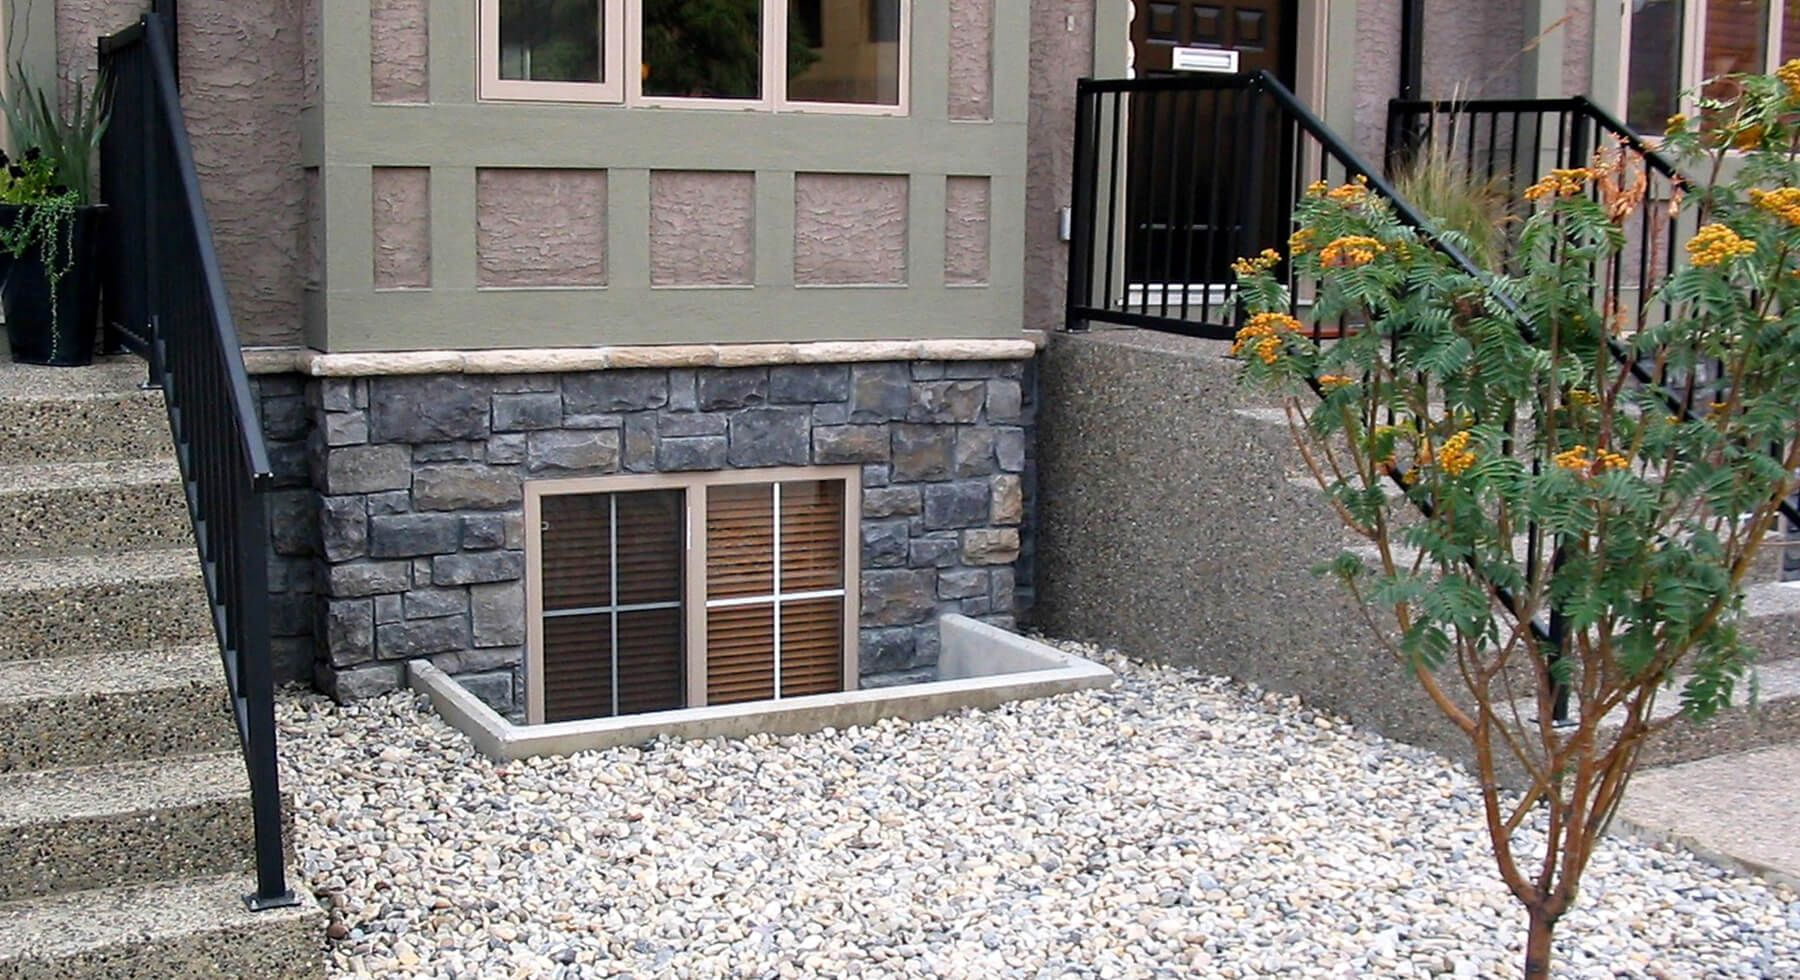 Pin ni kristen thompson sa patio pinterest for Poured concrete basement cost